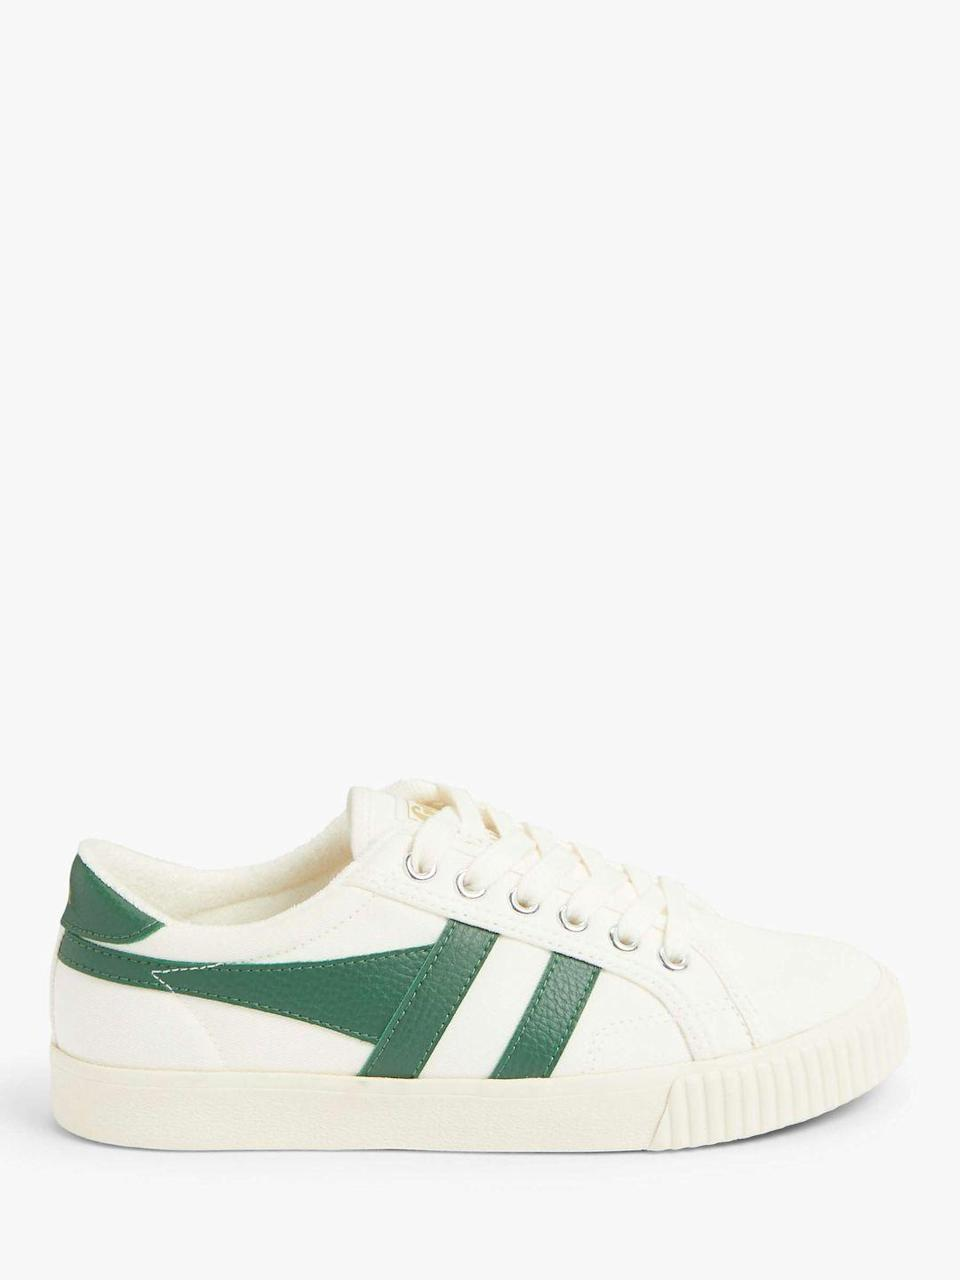 """<p><strong>Which style? </strong>Tennis Mark Cox Trainer</p><p><strong>How much? </strong>£50<br><br><a class=""""link rapid-noclick-resp"""" href=""""https://go.redirectingat.com?id=127X1599956&url=https%3A%2F%2Fwww.johnlewis.com%2Fgola-tennis-mark-cox-trainers-off-white-dark-green%2Fp5121318&sref=https%3A%2F%2Fwww.womenshealthmag.com%2Fuk%2Ffitness%2Fg28619284%2Fvegan-trainers%2F"""" rel=""""nofollow noopener"""" target=""""_blank"""" data-ylk=""""slk:SHOP NOW"""">SHOP NOW</a><br><br>Ok, technically Gola's plimsolls aren't just for fashion purposes because you could definitely <a href=""""https://www.womenshealthmag.com/uk/fitness/a32638553/tennis-rules/"""" rel=""""nofollow noopener"""" target=""""_blank"""" data-ylk=""""slk:play tennis"""" class=""""link rapid-noclick-resp"""">play tennis</a> in them. Still, we'd like a pair in our off-duty wardrobes for wearing with jeans and floral midi dresses.<br><br>This newer version of the brand's classic Marc Cox design is approved by The Vegan Society and tested<br>with Ve-Map technology (a process to identify any traces of animal DNA).</p>"""